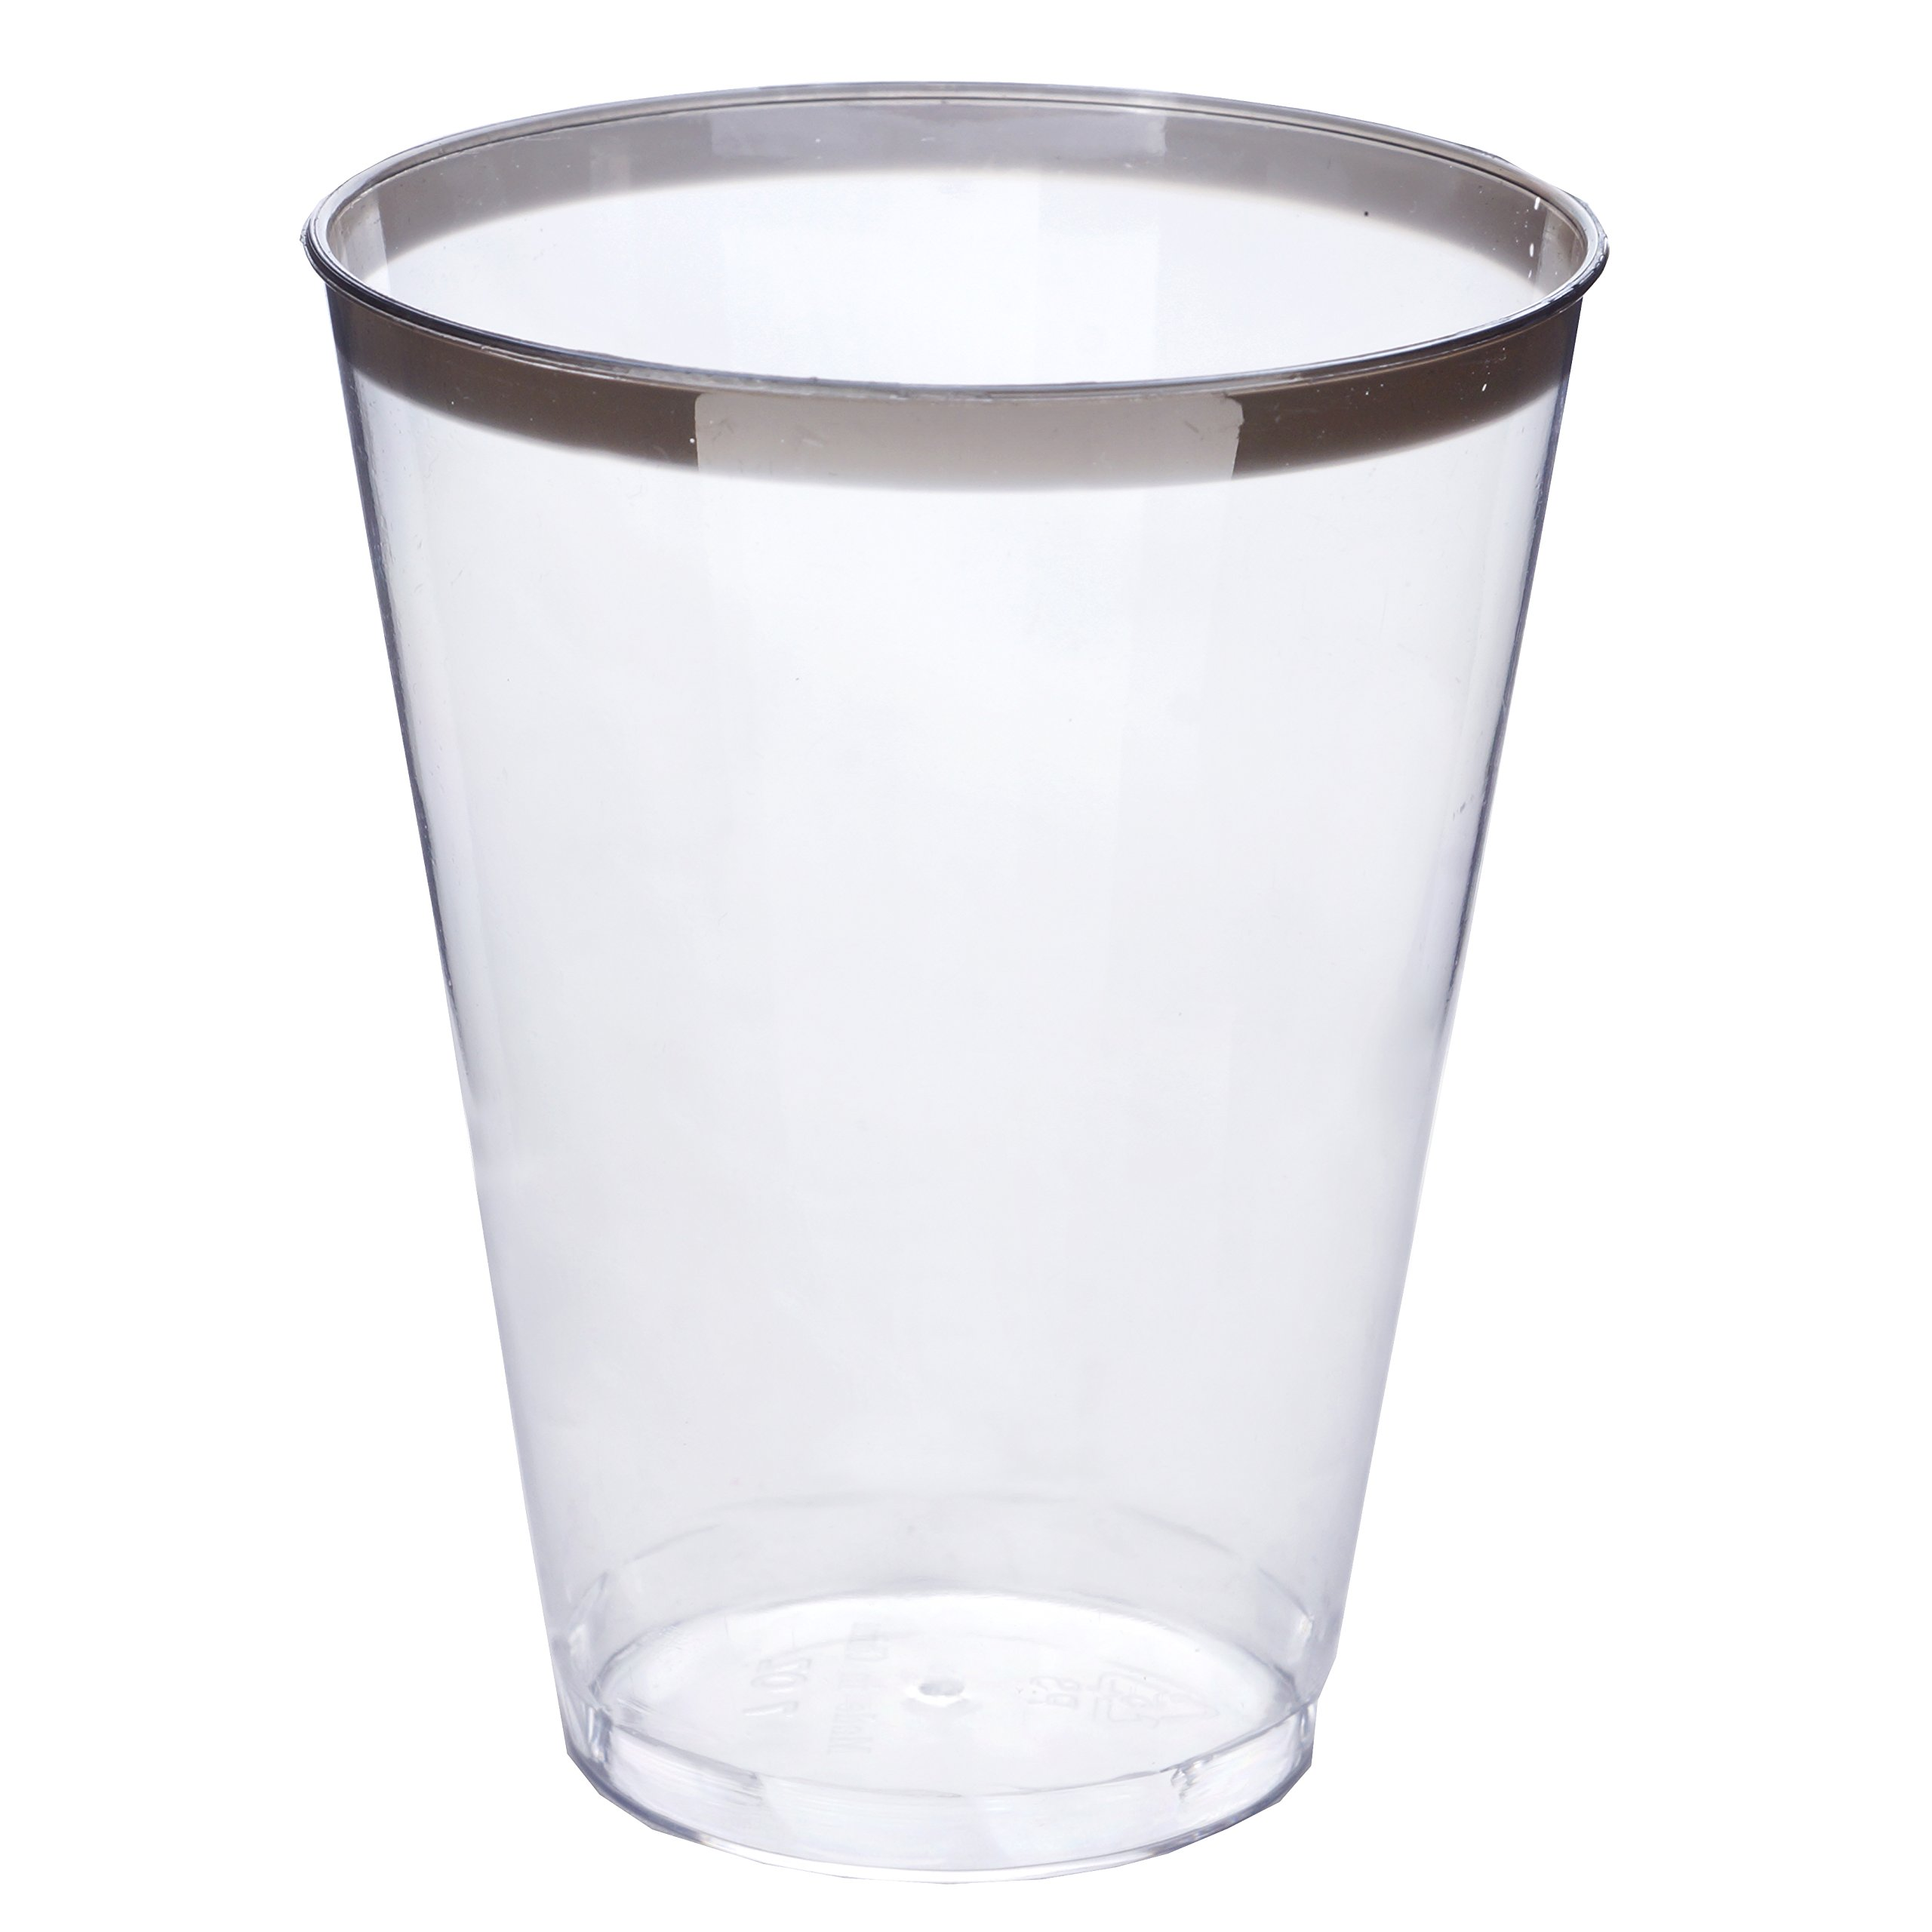 Efavormart 60 Pcs - Silver Rimmed 7oz Disposable Plastic Cup Glassware for Wedding Catering Birthday Party Banquet Events